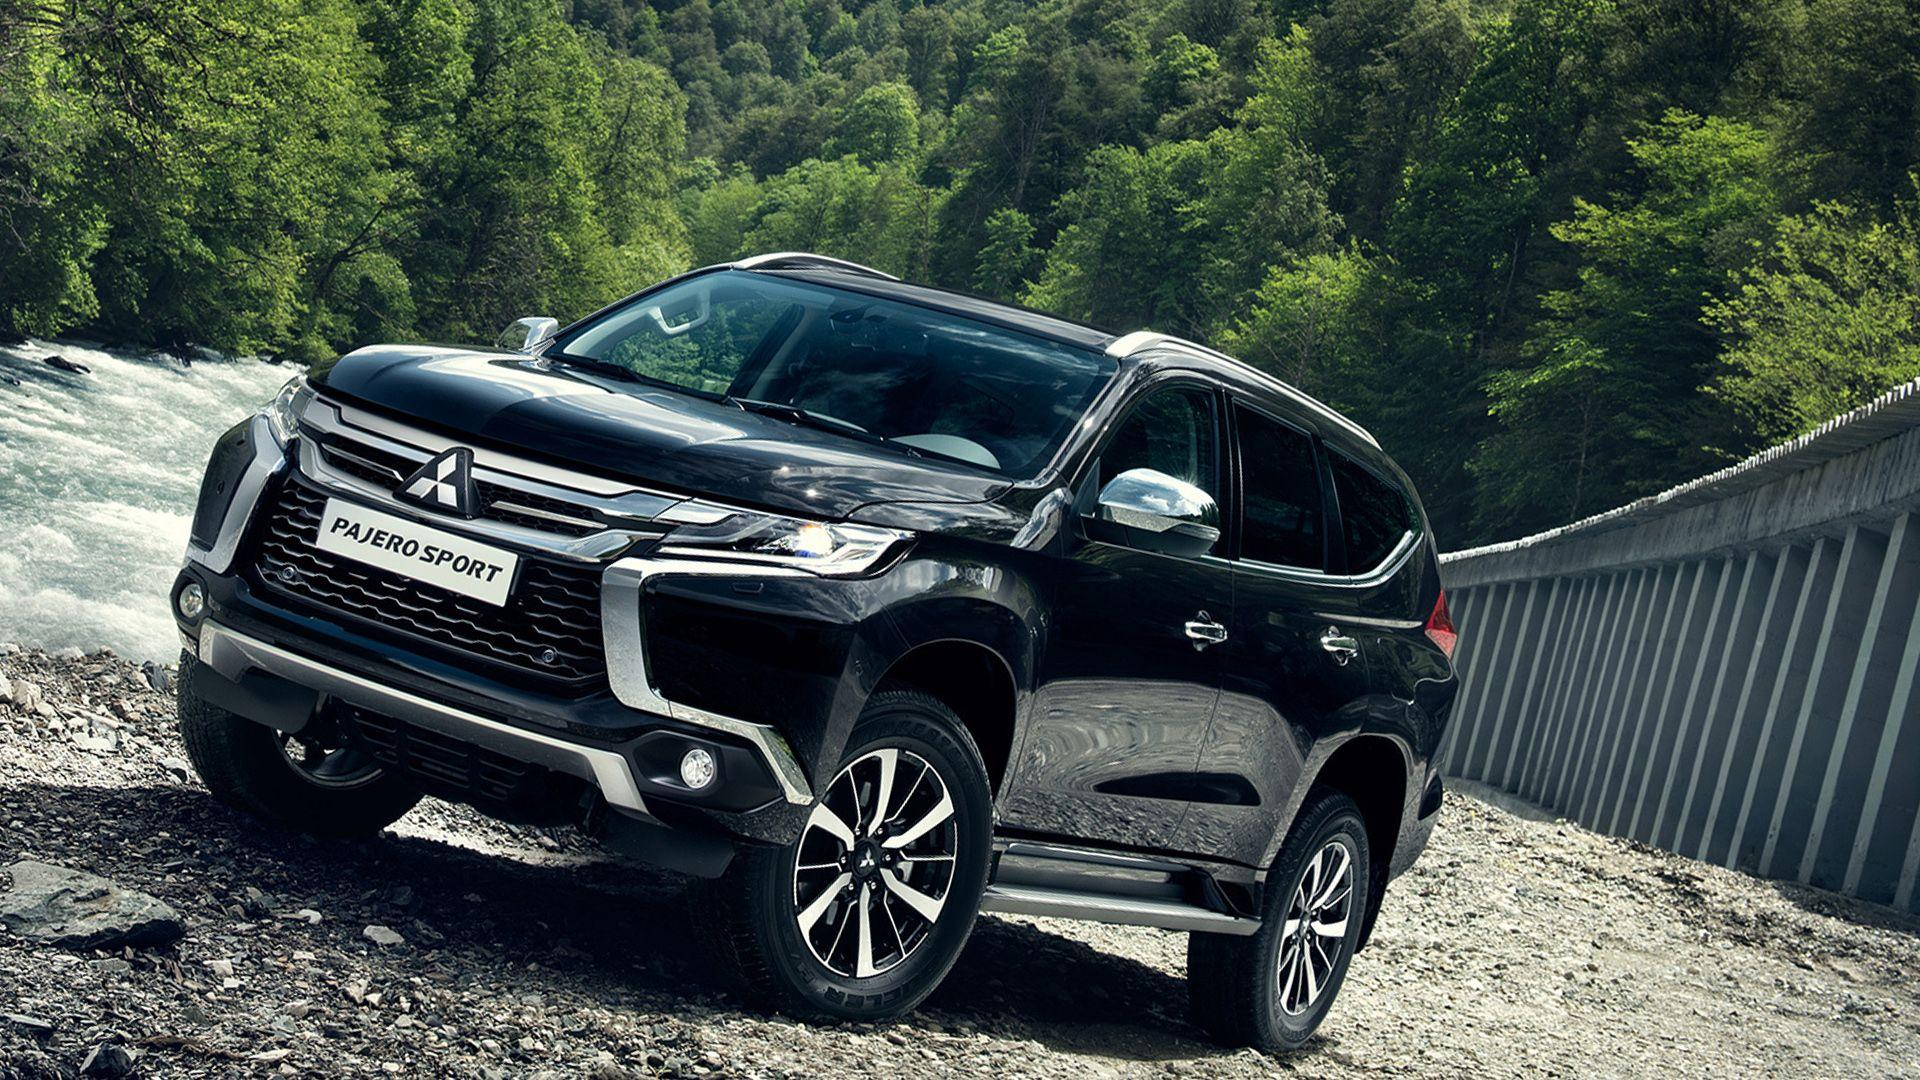 Incroyable 2018 Mitsubishi Pajero Wallpaper   2018 Mitsubishi Pajero Review .